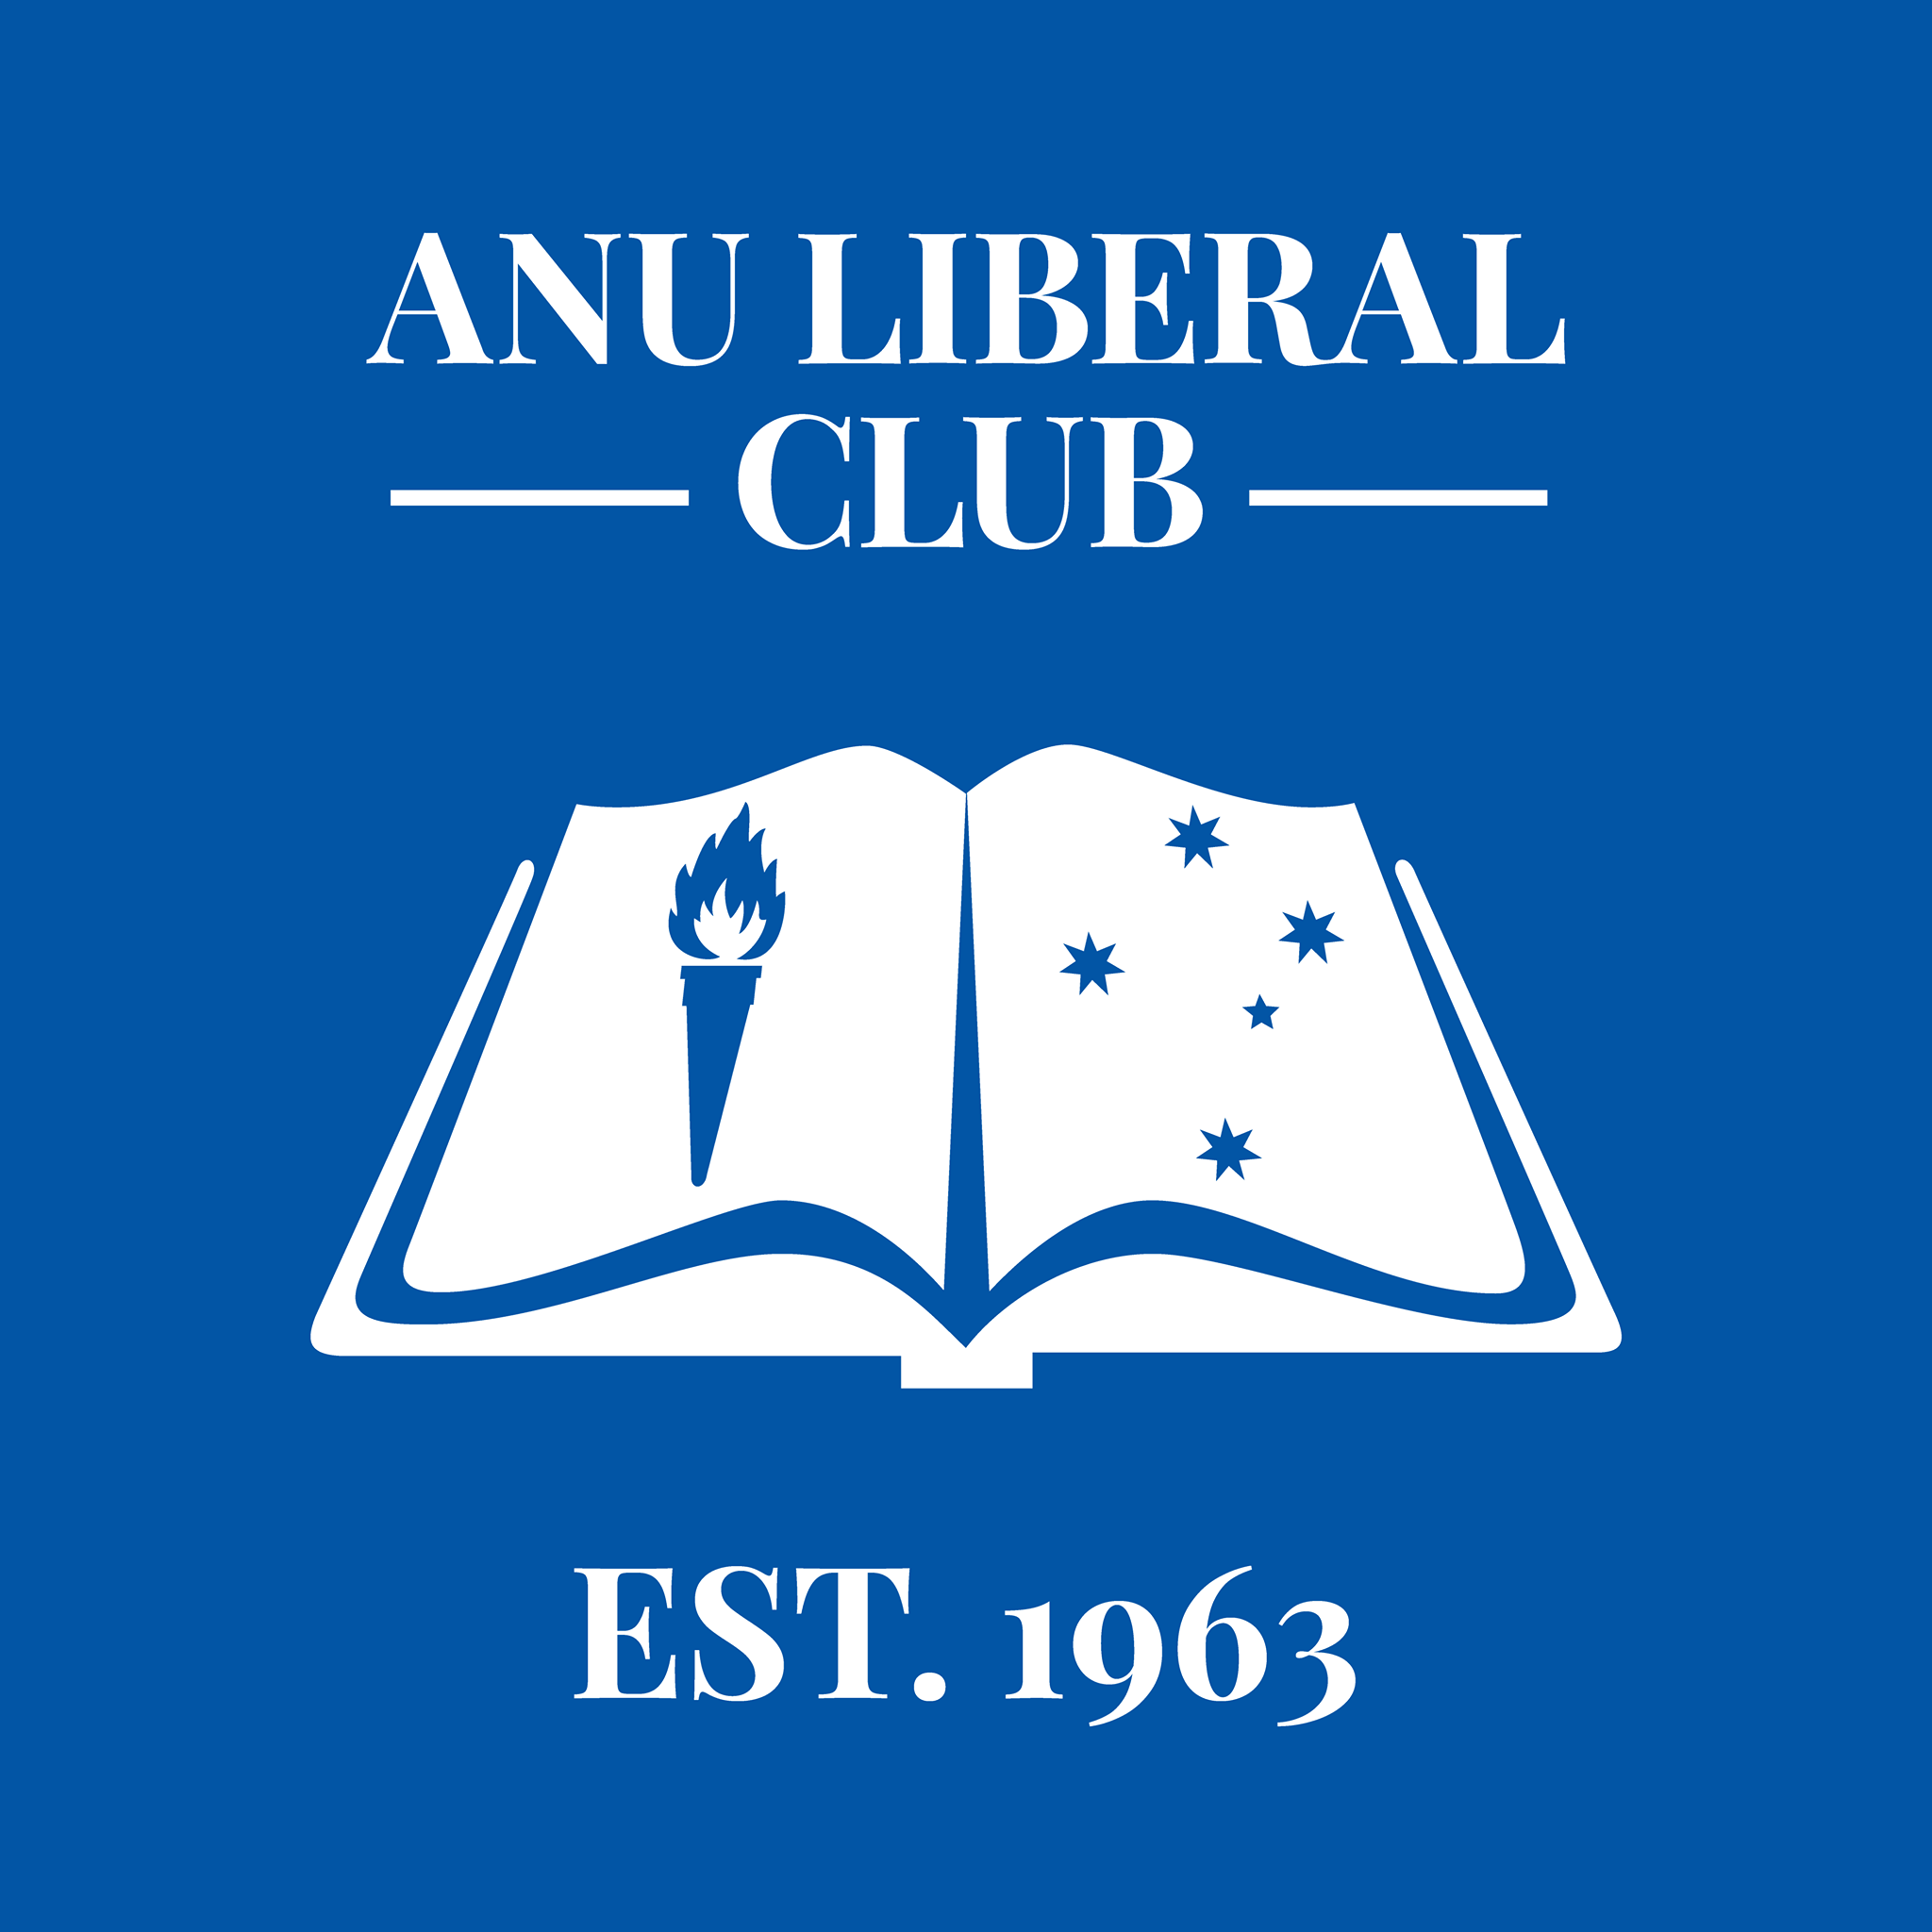 https://www.alsf.org.au/wp-content/uploads/2020/08/ANULC.png